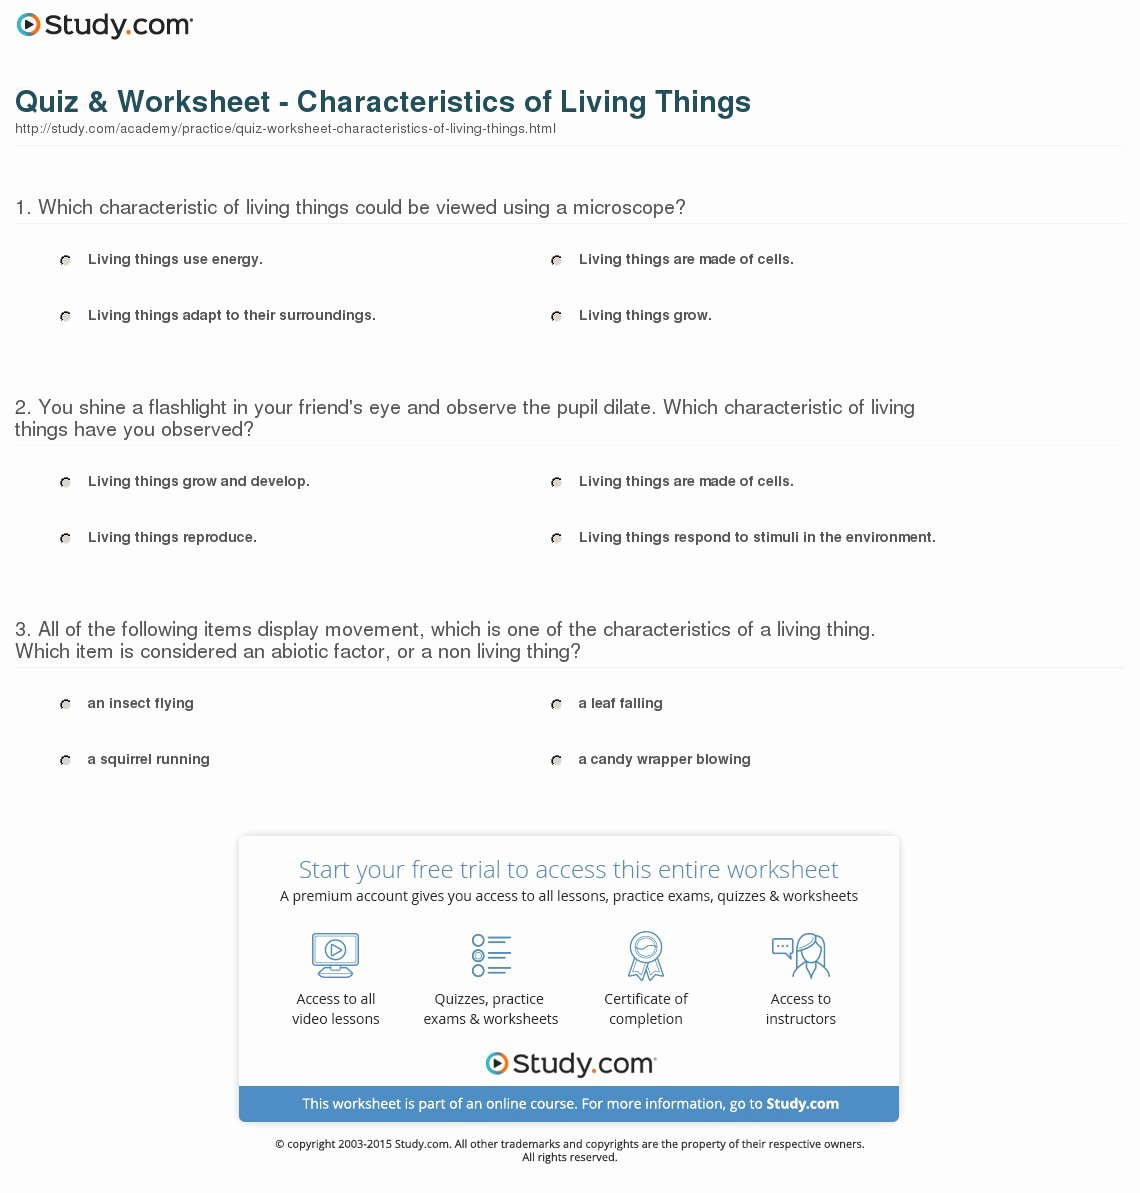 Characteristics Of Living Things Worksheet Inspirational Quiz & Worksheet Characteristics Of Living Things